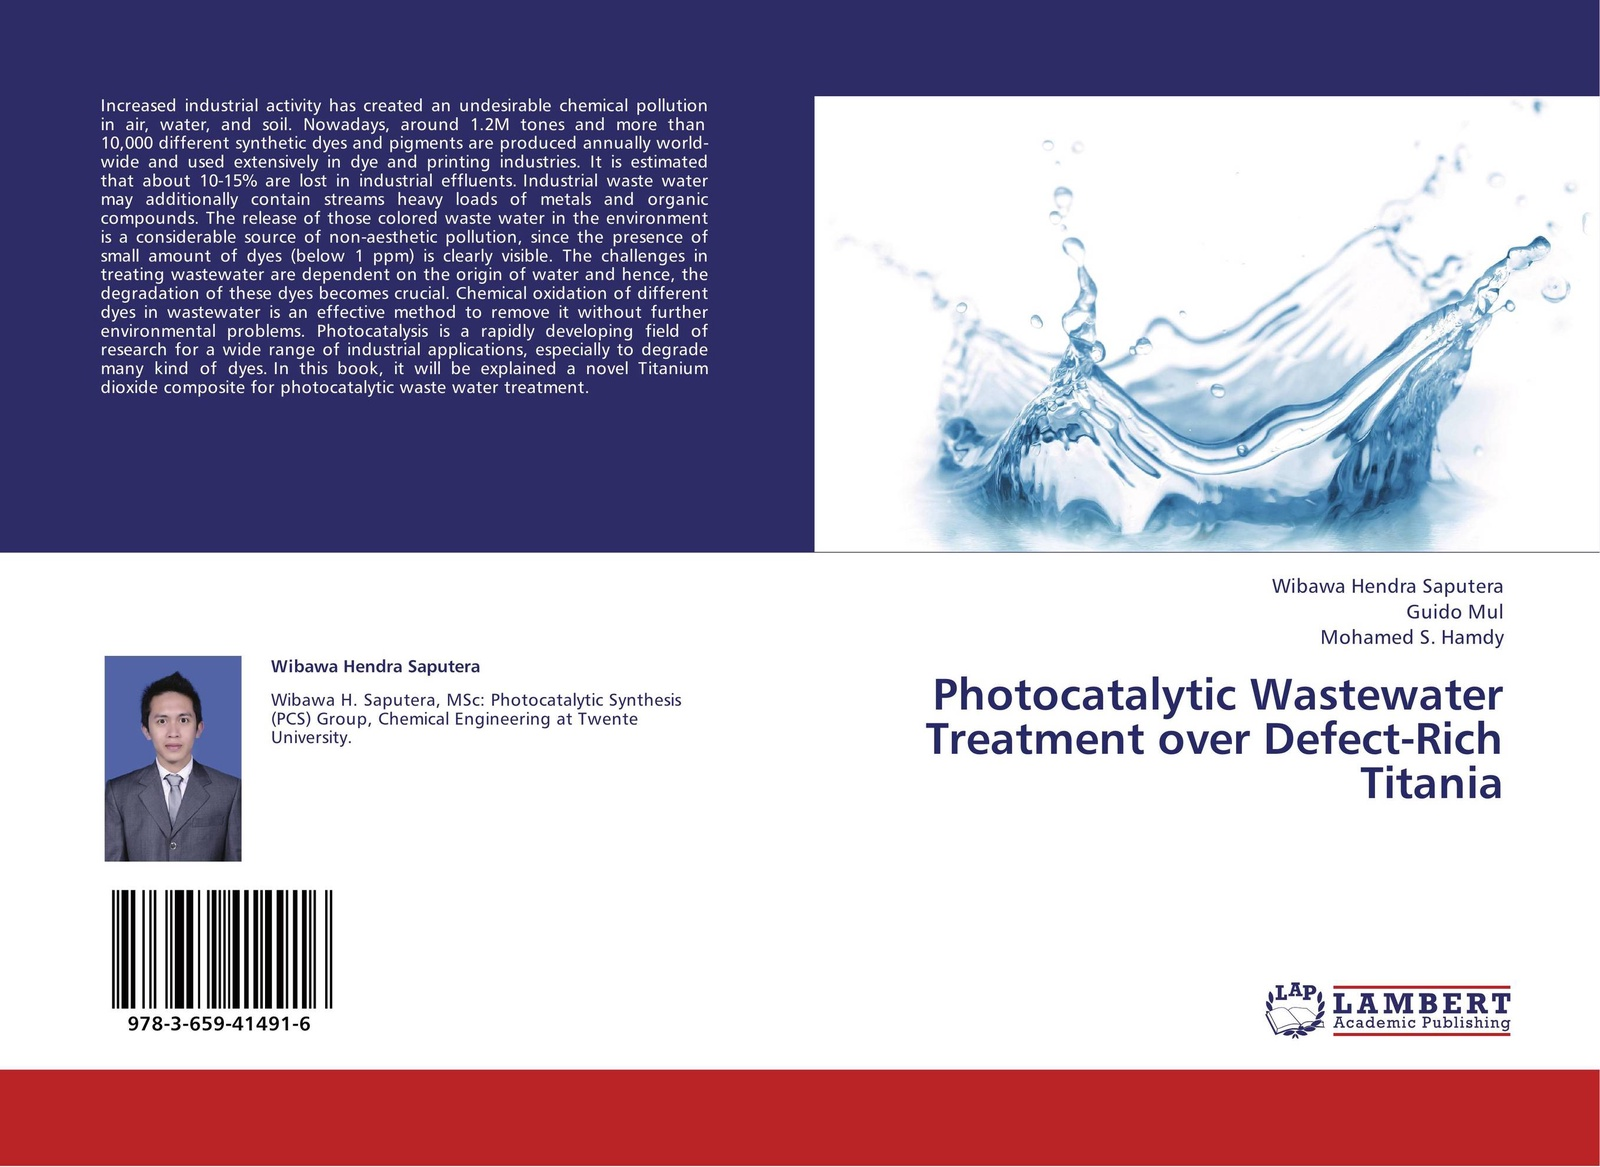 Wibawa Hendra Saputera,Guido Mul and Mohamed S. Hamdy Photocatalytic Wastewater Treatment over Defect-Rich Titania kevin henke arsenic environmental chemistry health threats and waste treatment